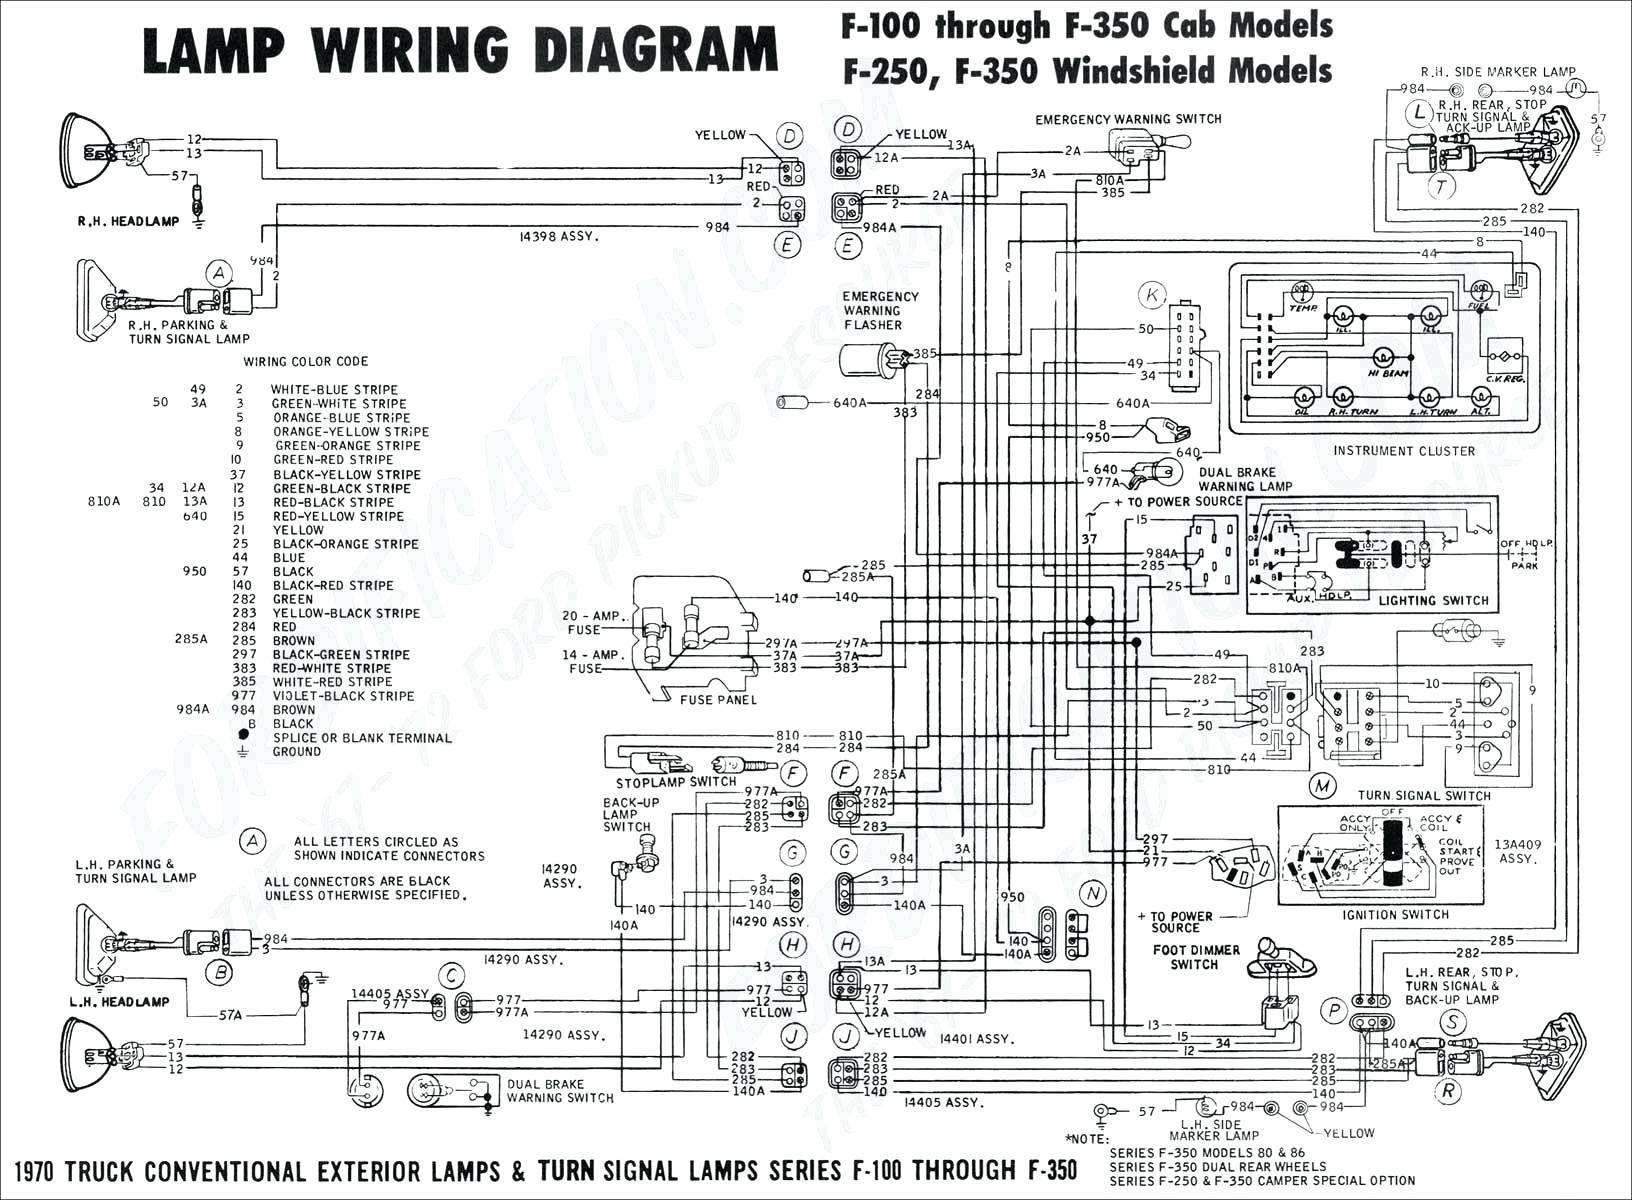 utility trailer wiring diagram Download-Wiring Diagrams for Utility Trailer Valid Trailer Light Wiring Diagram Utility Trailer Wiring Diagram 12-r